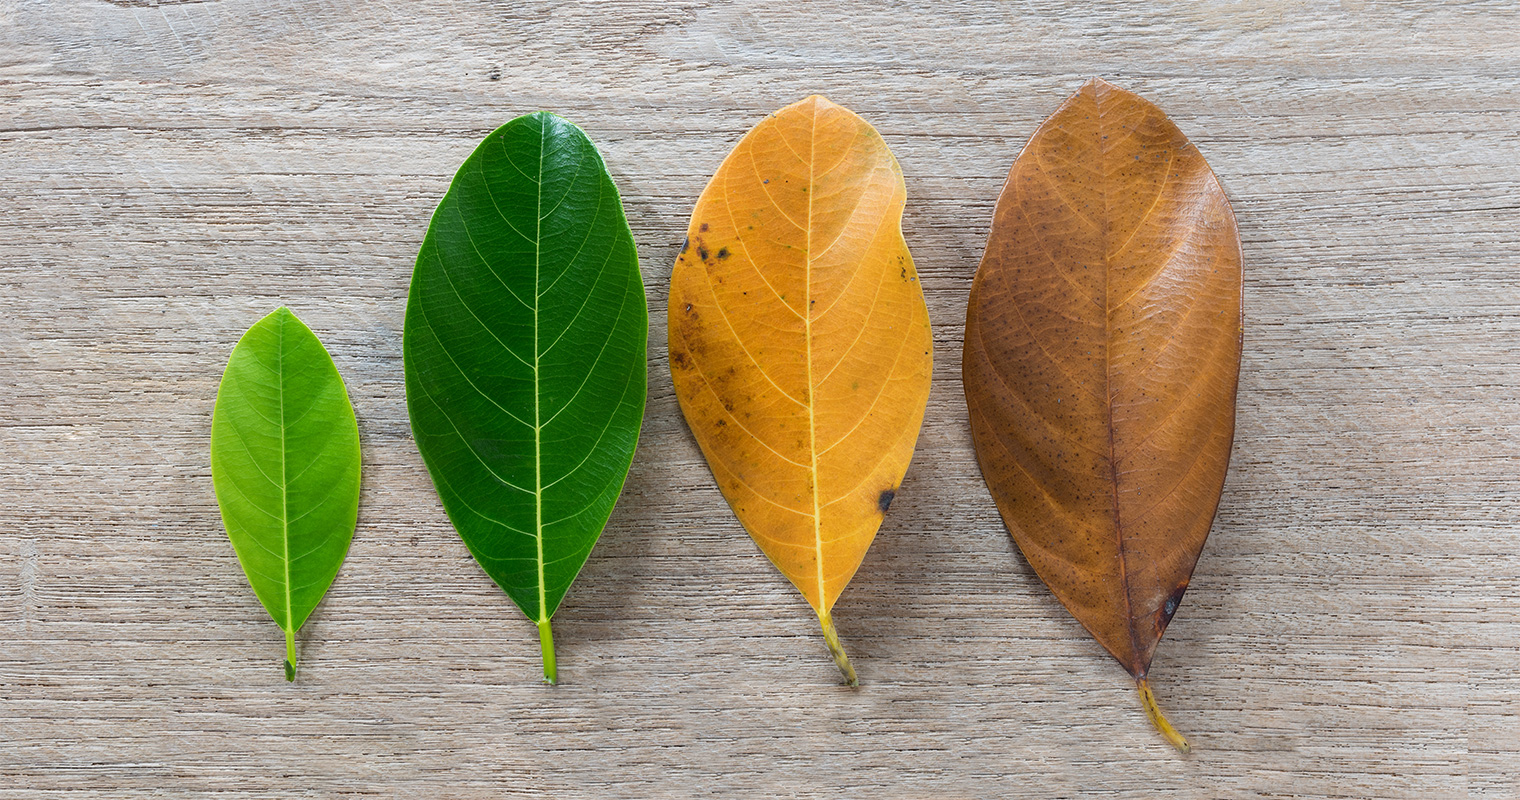 aging of life shown through the different color of leaf in different season